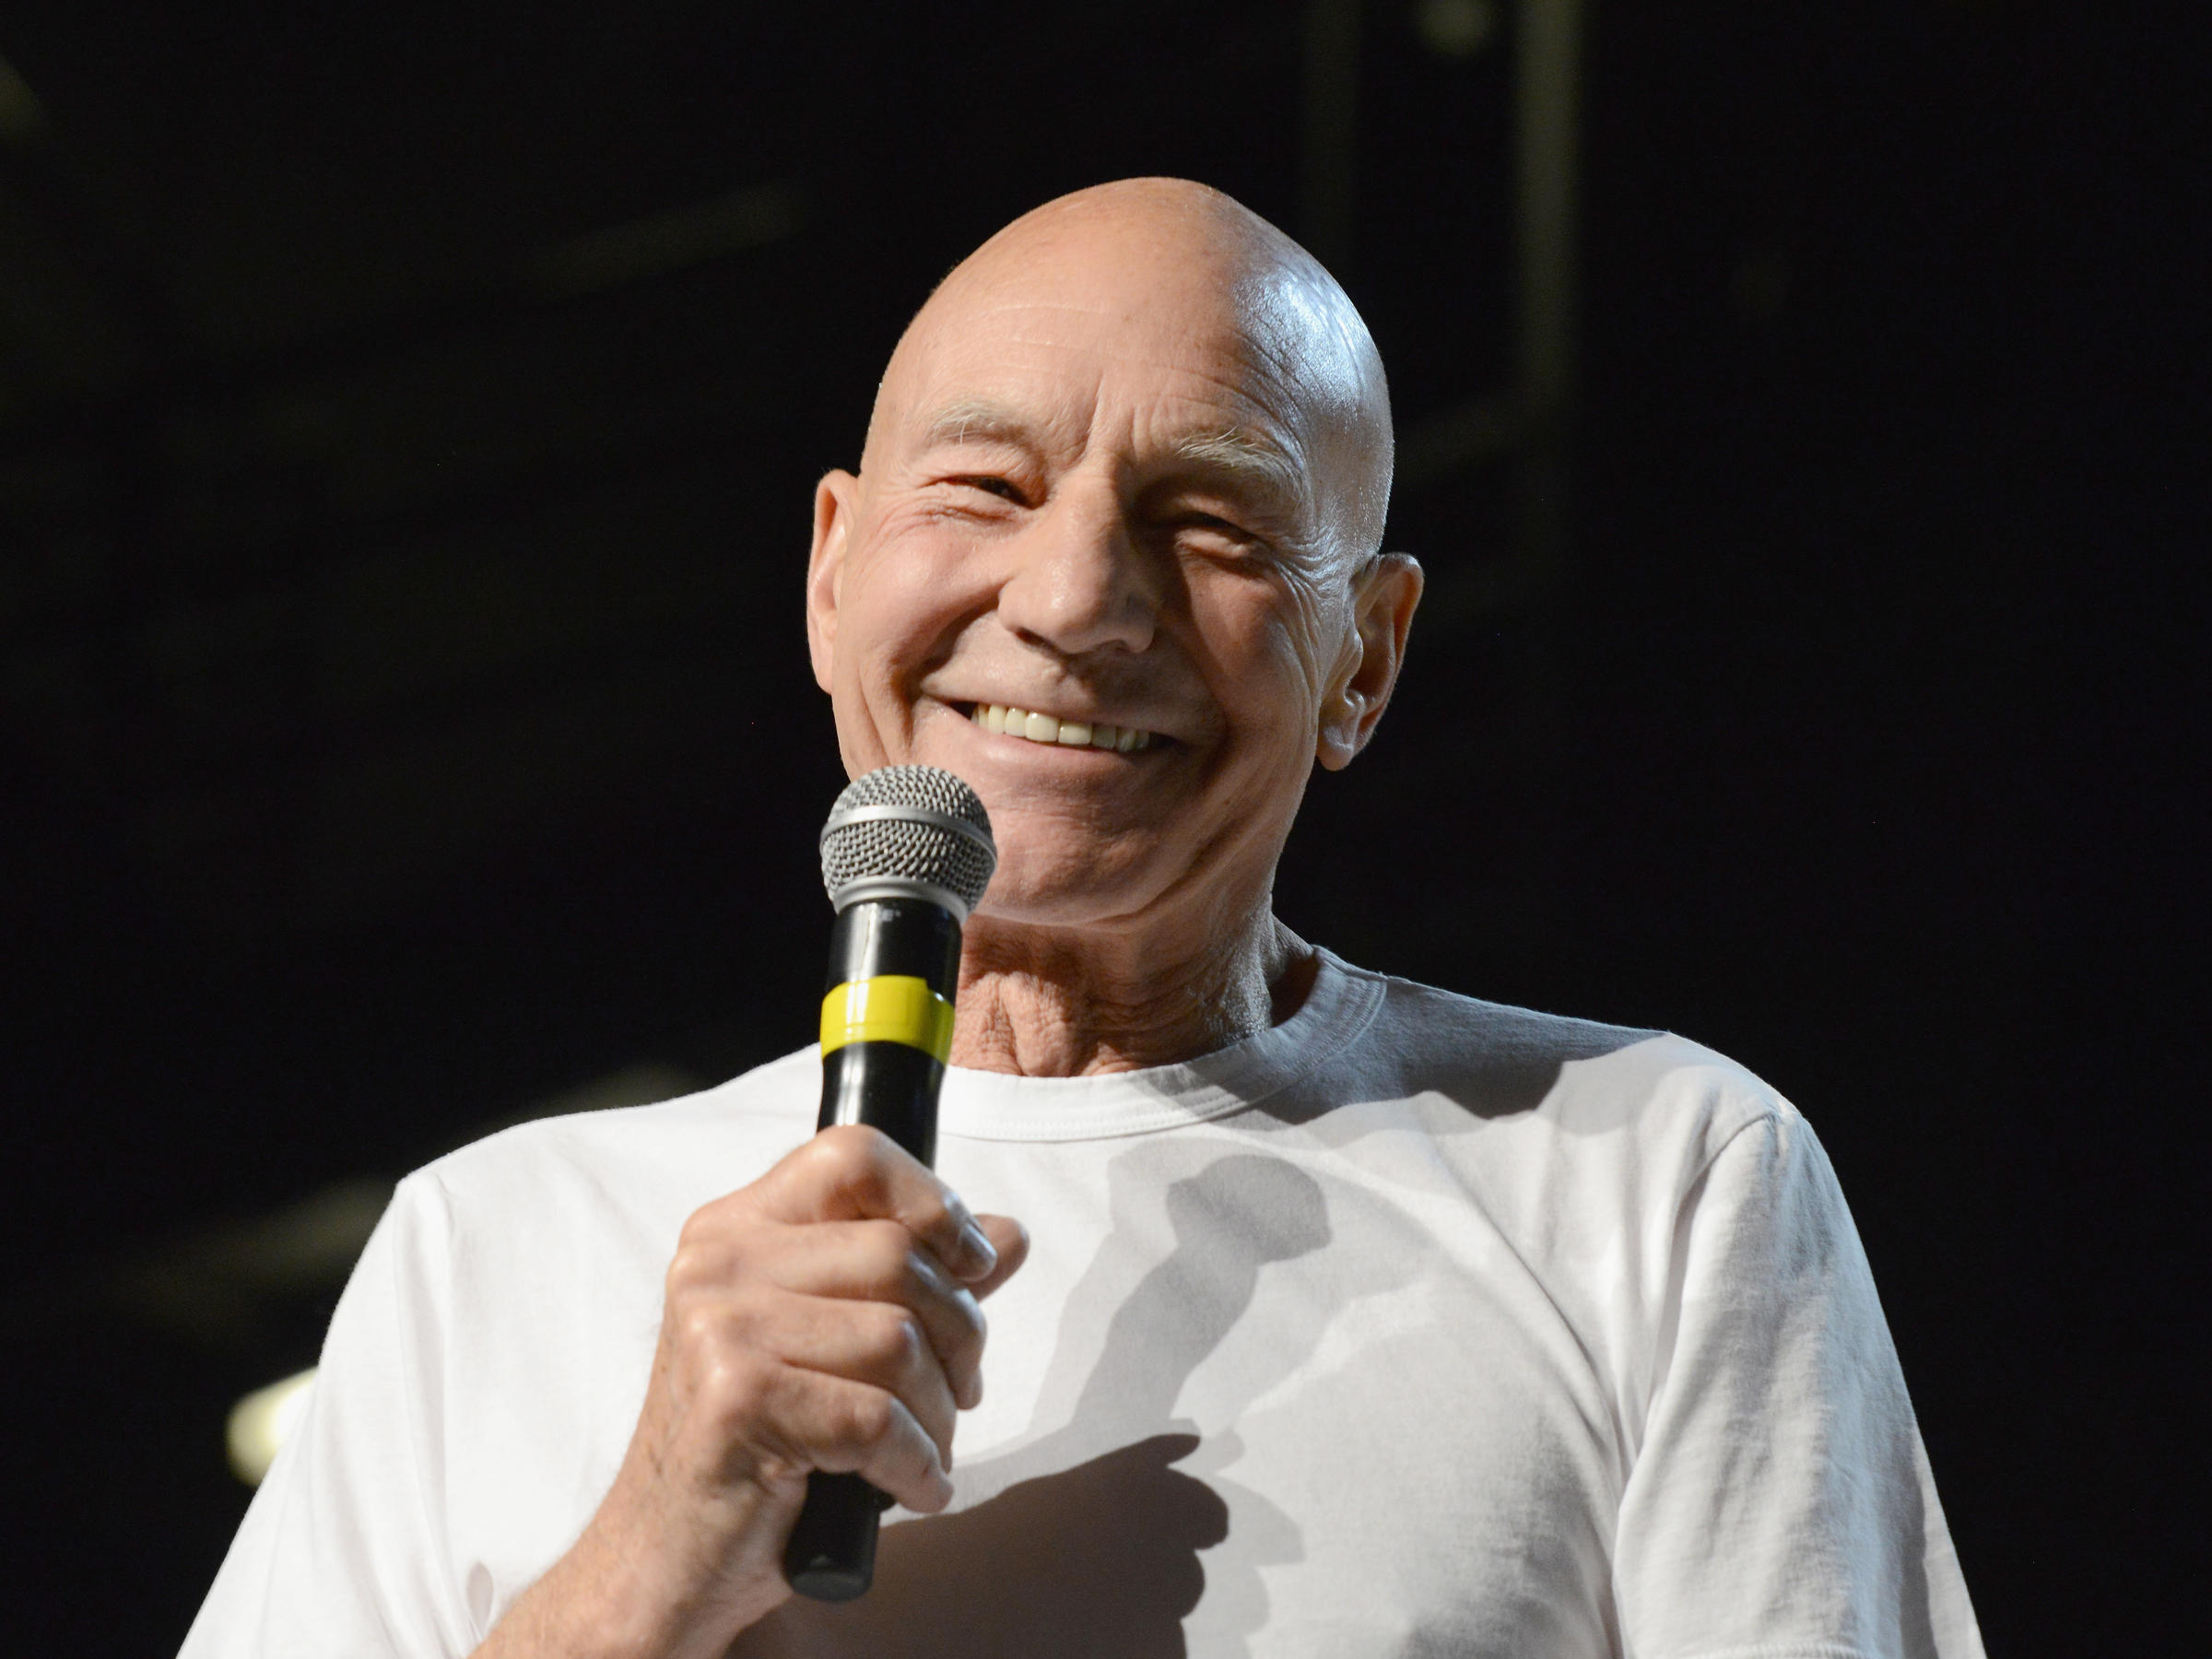 Patrick Stewart Is Reprising His Role As Captain Picard In